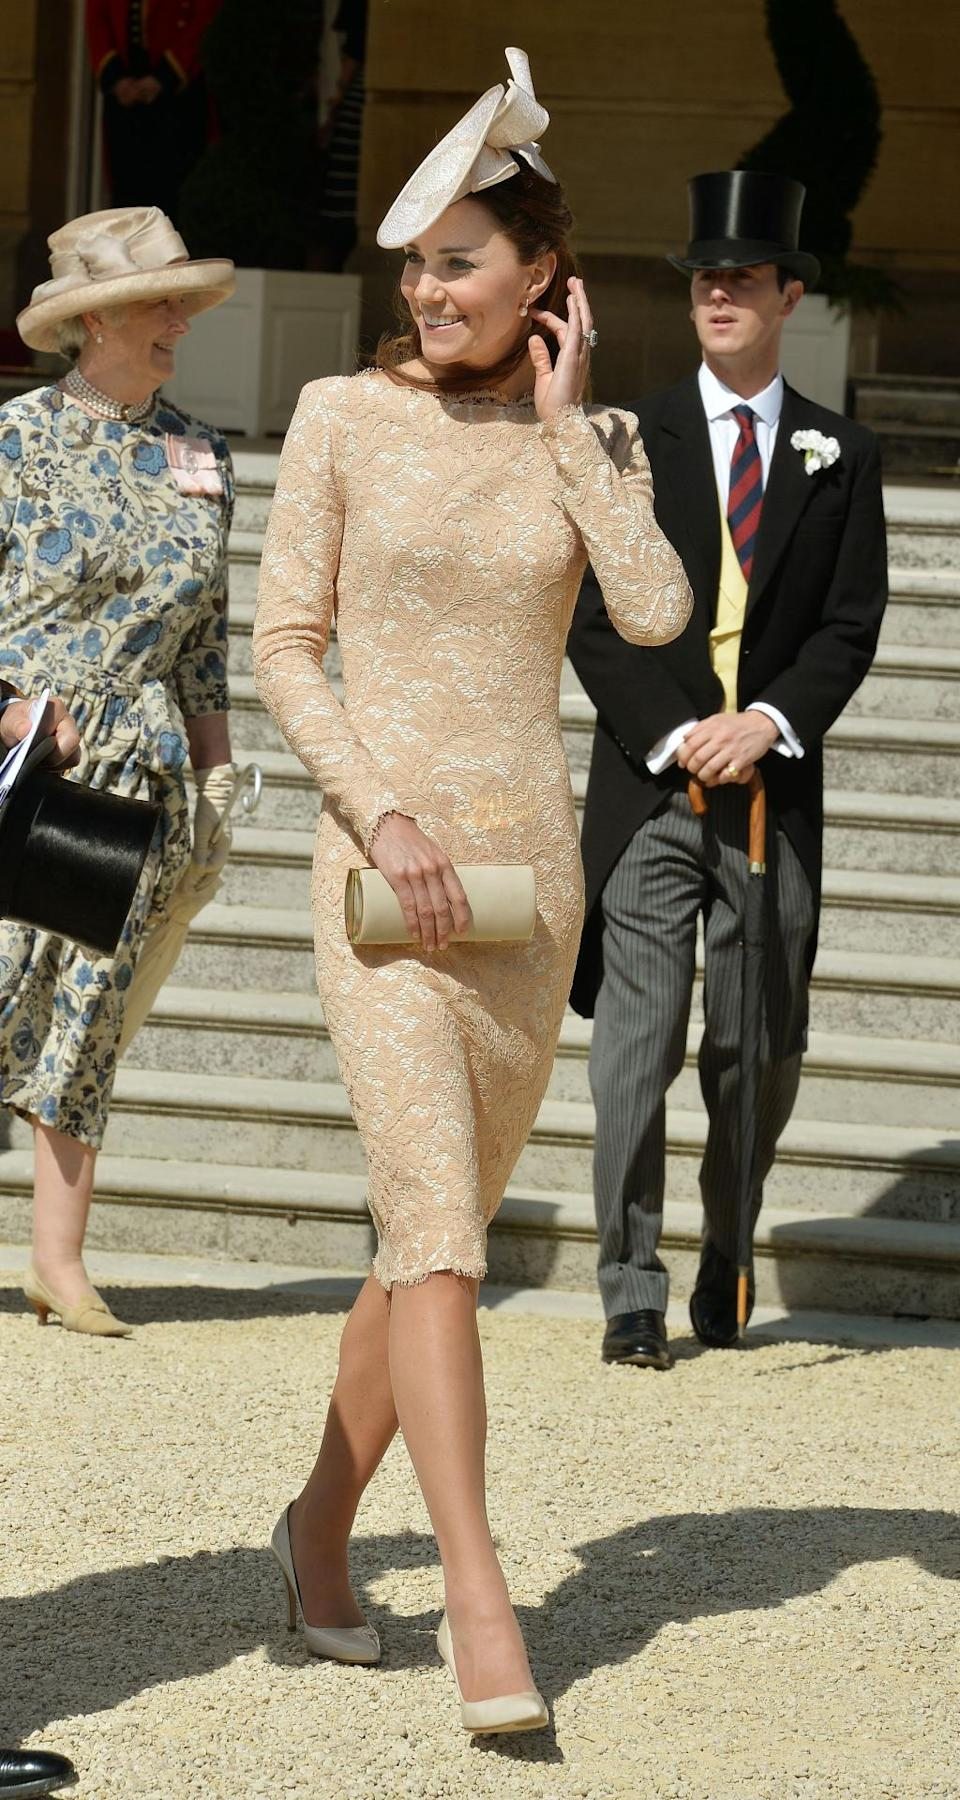 <p>The Duchess stunned in a bespoke nude dress by Alexander McQueen for Buckingham Palace's garden party. Kate accessorised with a coordinating hat by Jane Corbett and nude heels by Russell and Bromley. </p><p><i>[Photo: PA]</i></p>